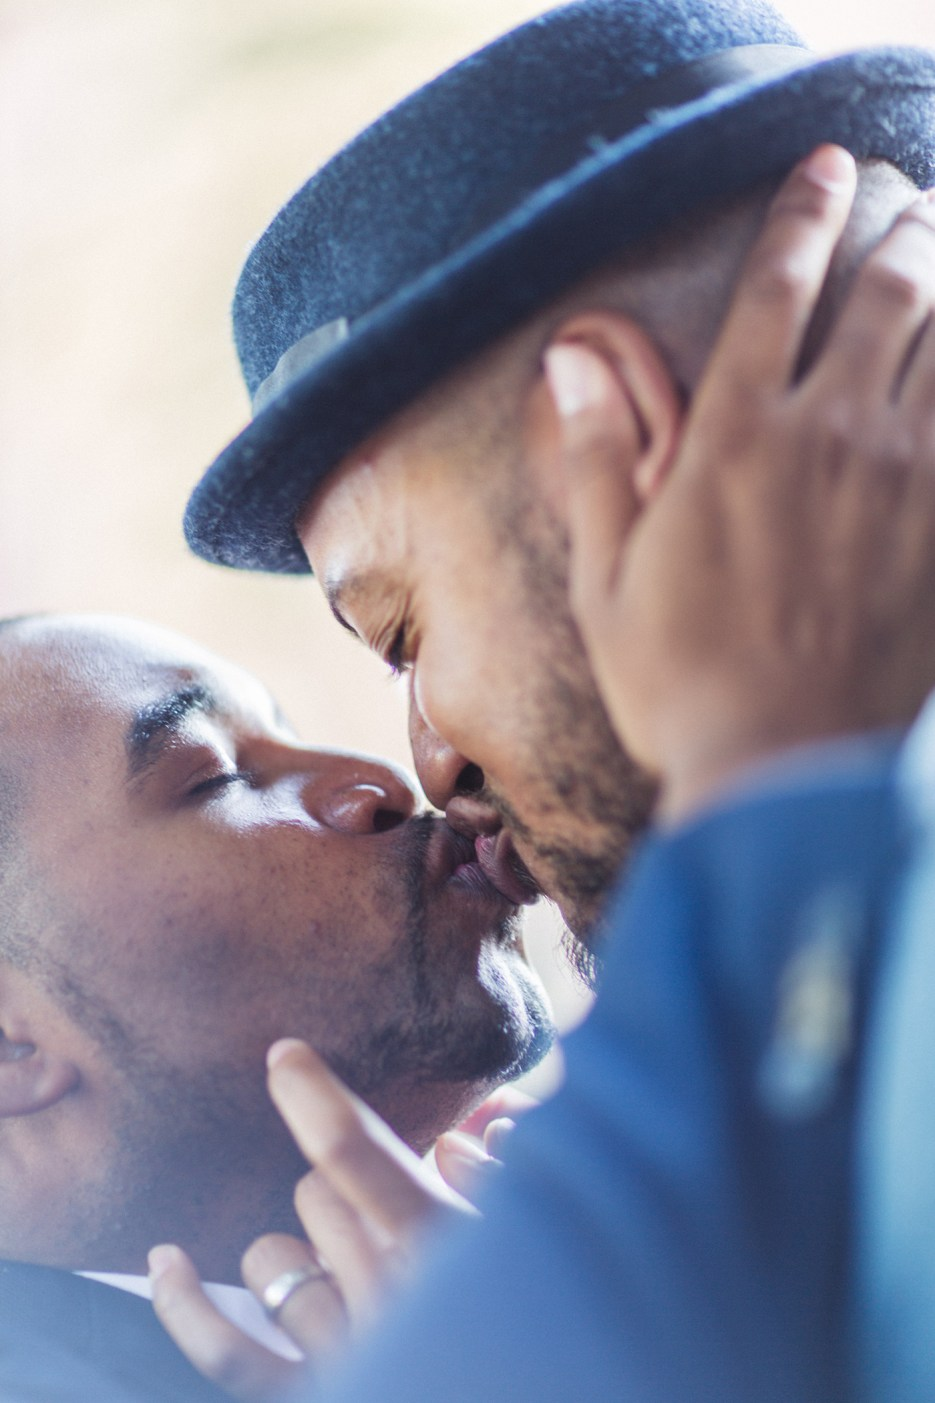 kissing close up two men in love at engagement photo session